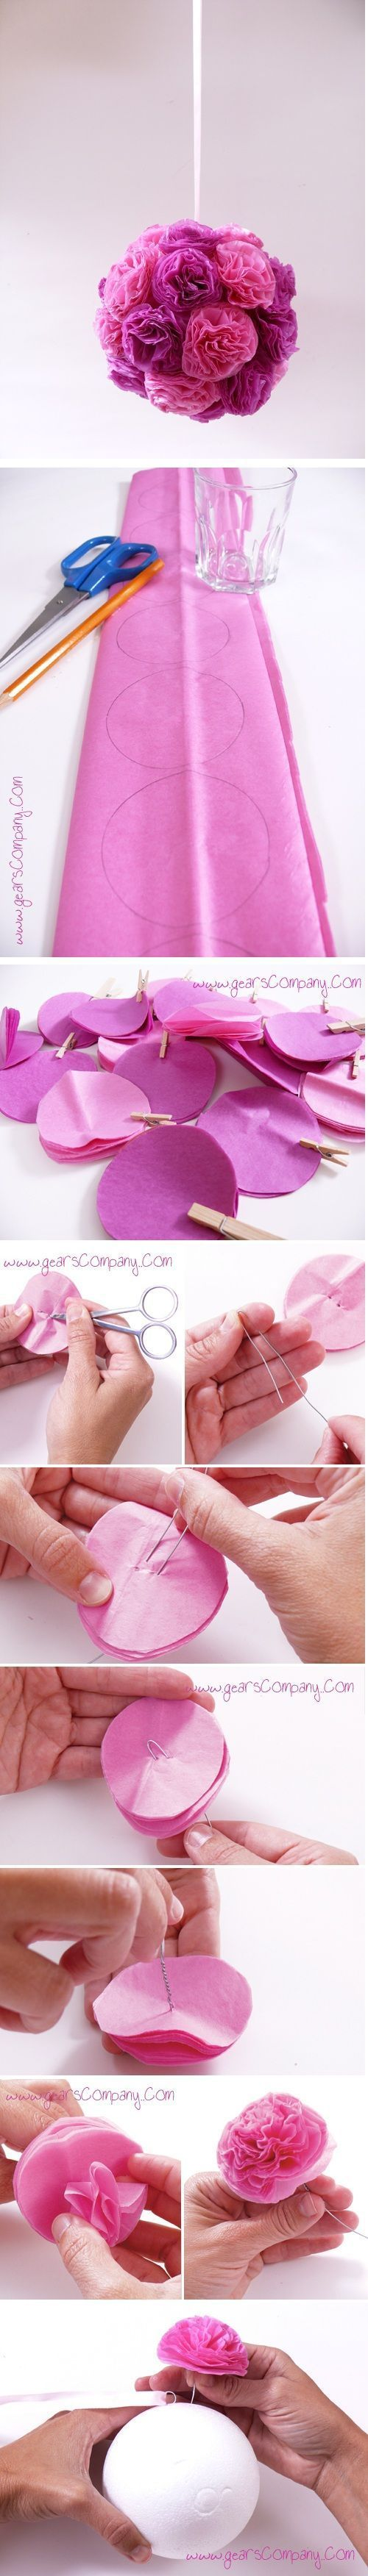 10 Amazing Ideas For Diy Home Decoration 10 | Diy Crafts Projects & Home Design